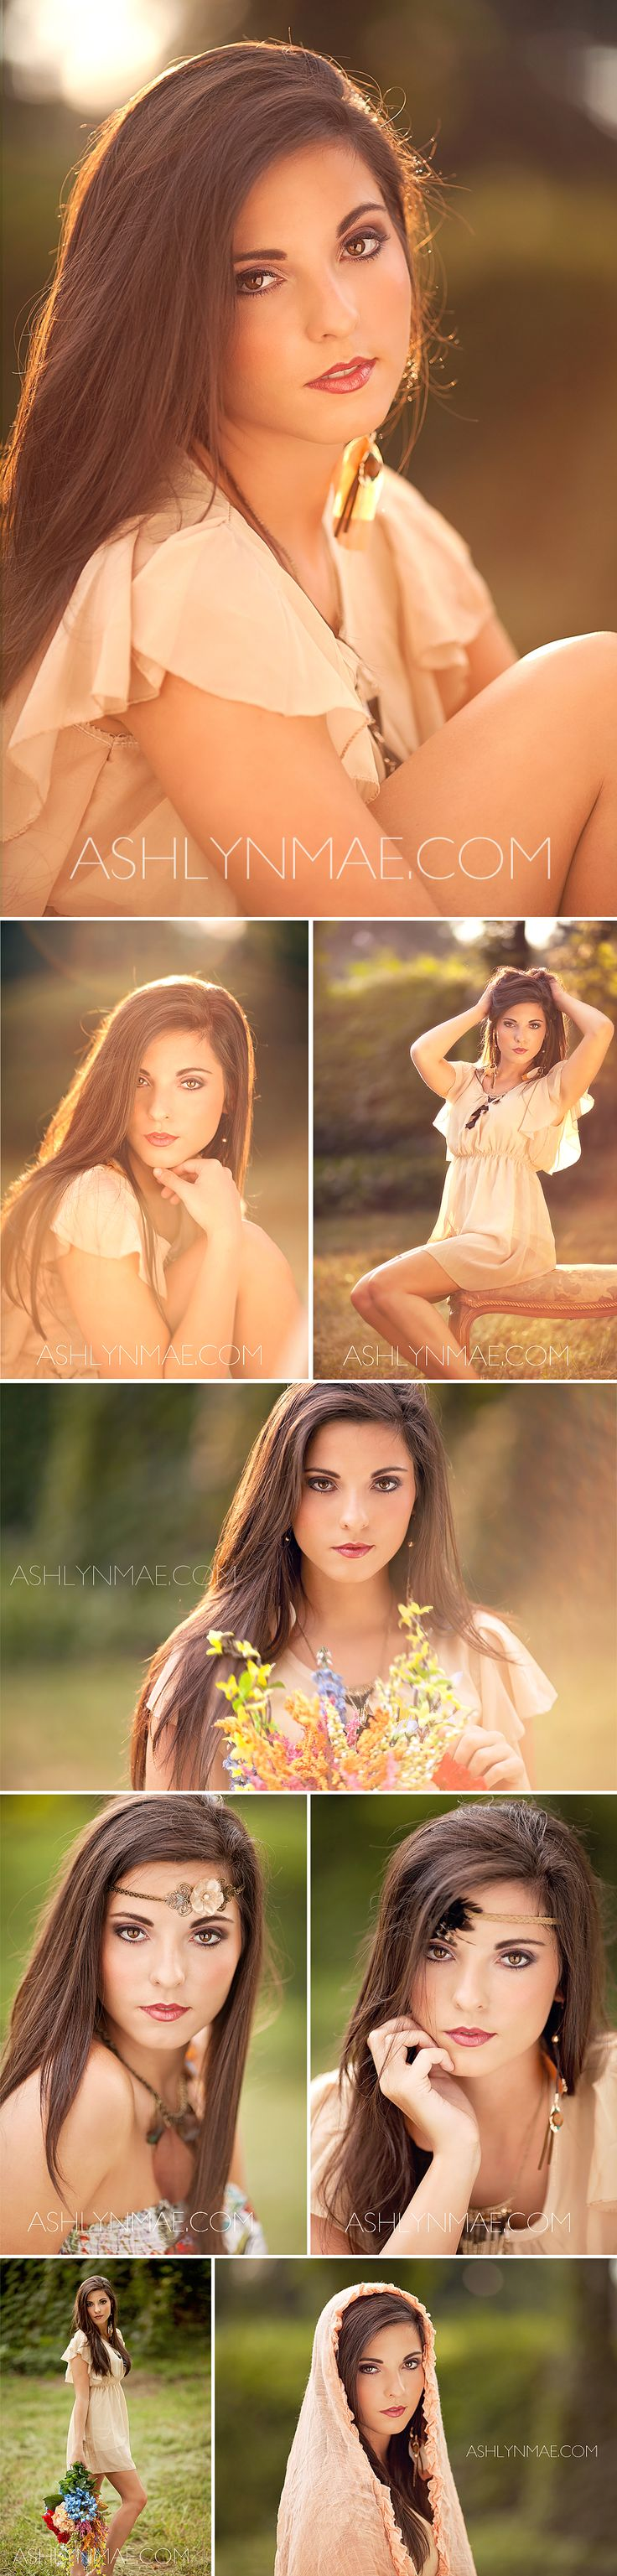 Ashlyn Mae Photography | Greenville, SC Model & Fashion Photographer